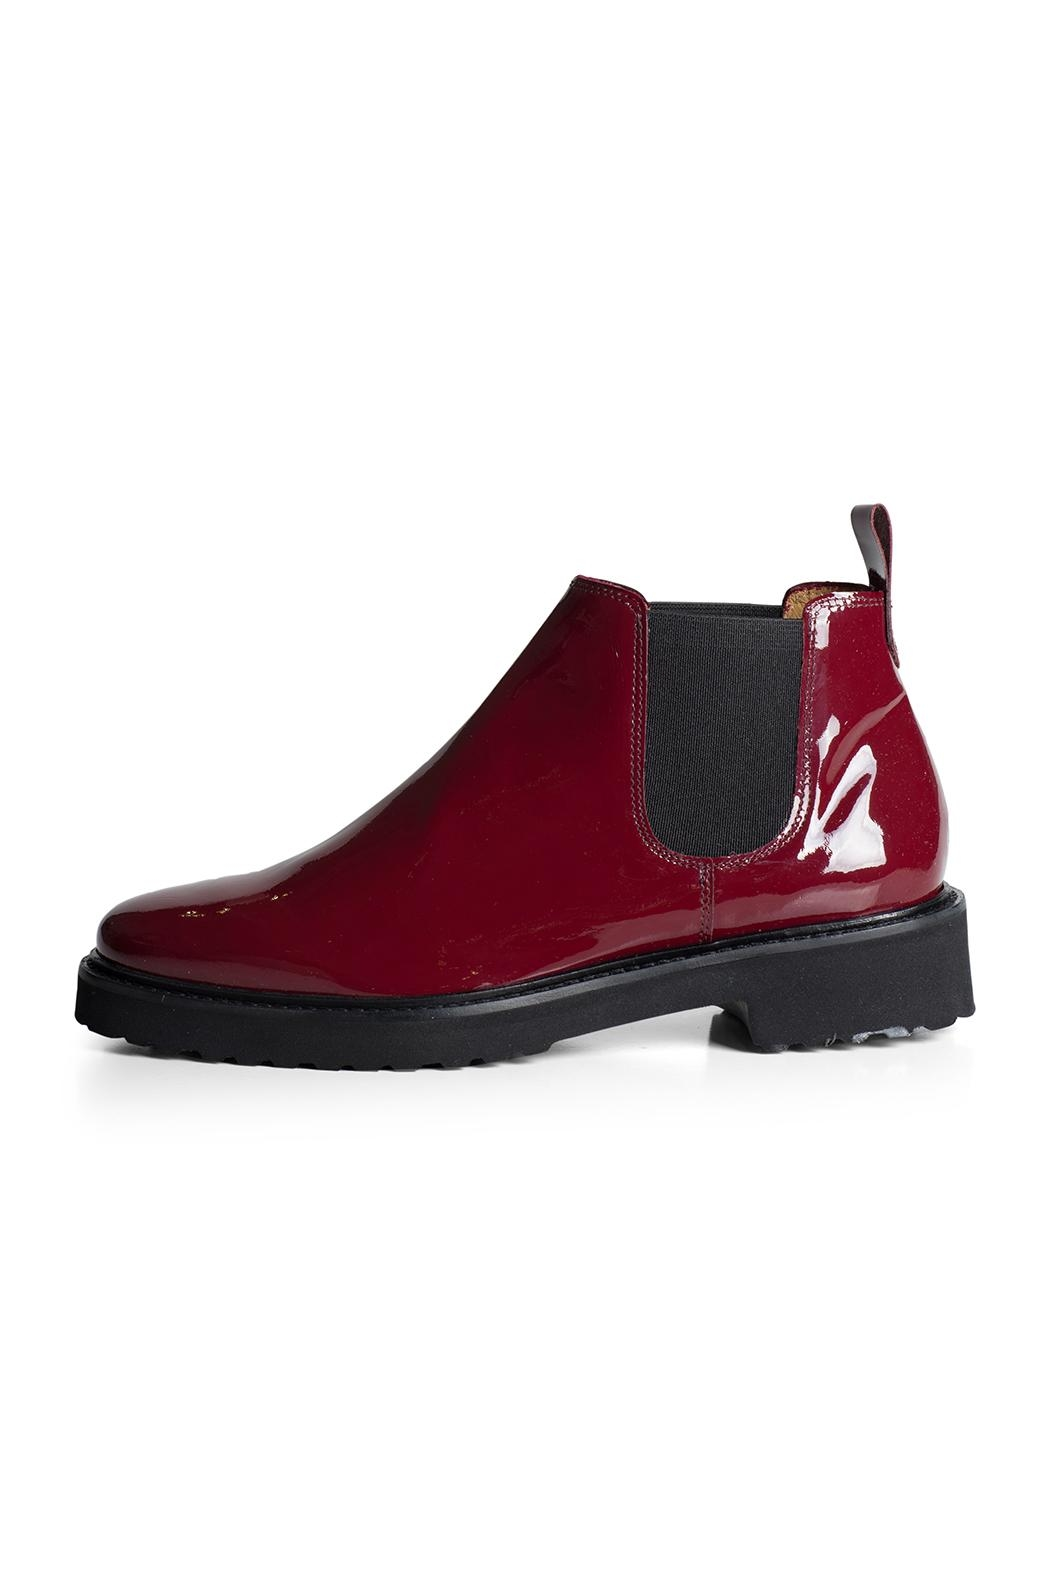 Pascucci Patent Burgundy Ankle-Boot - Front Full Image